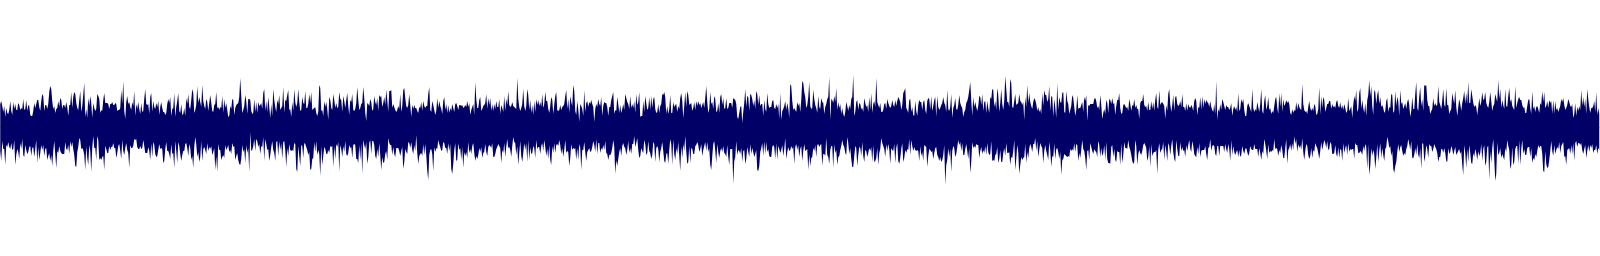 waveform of track #132332